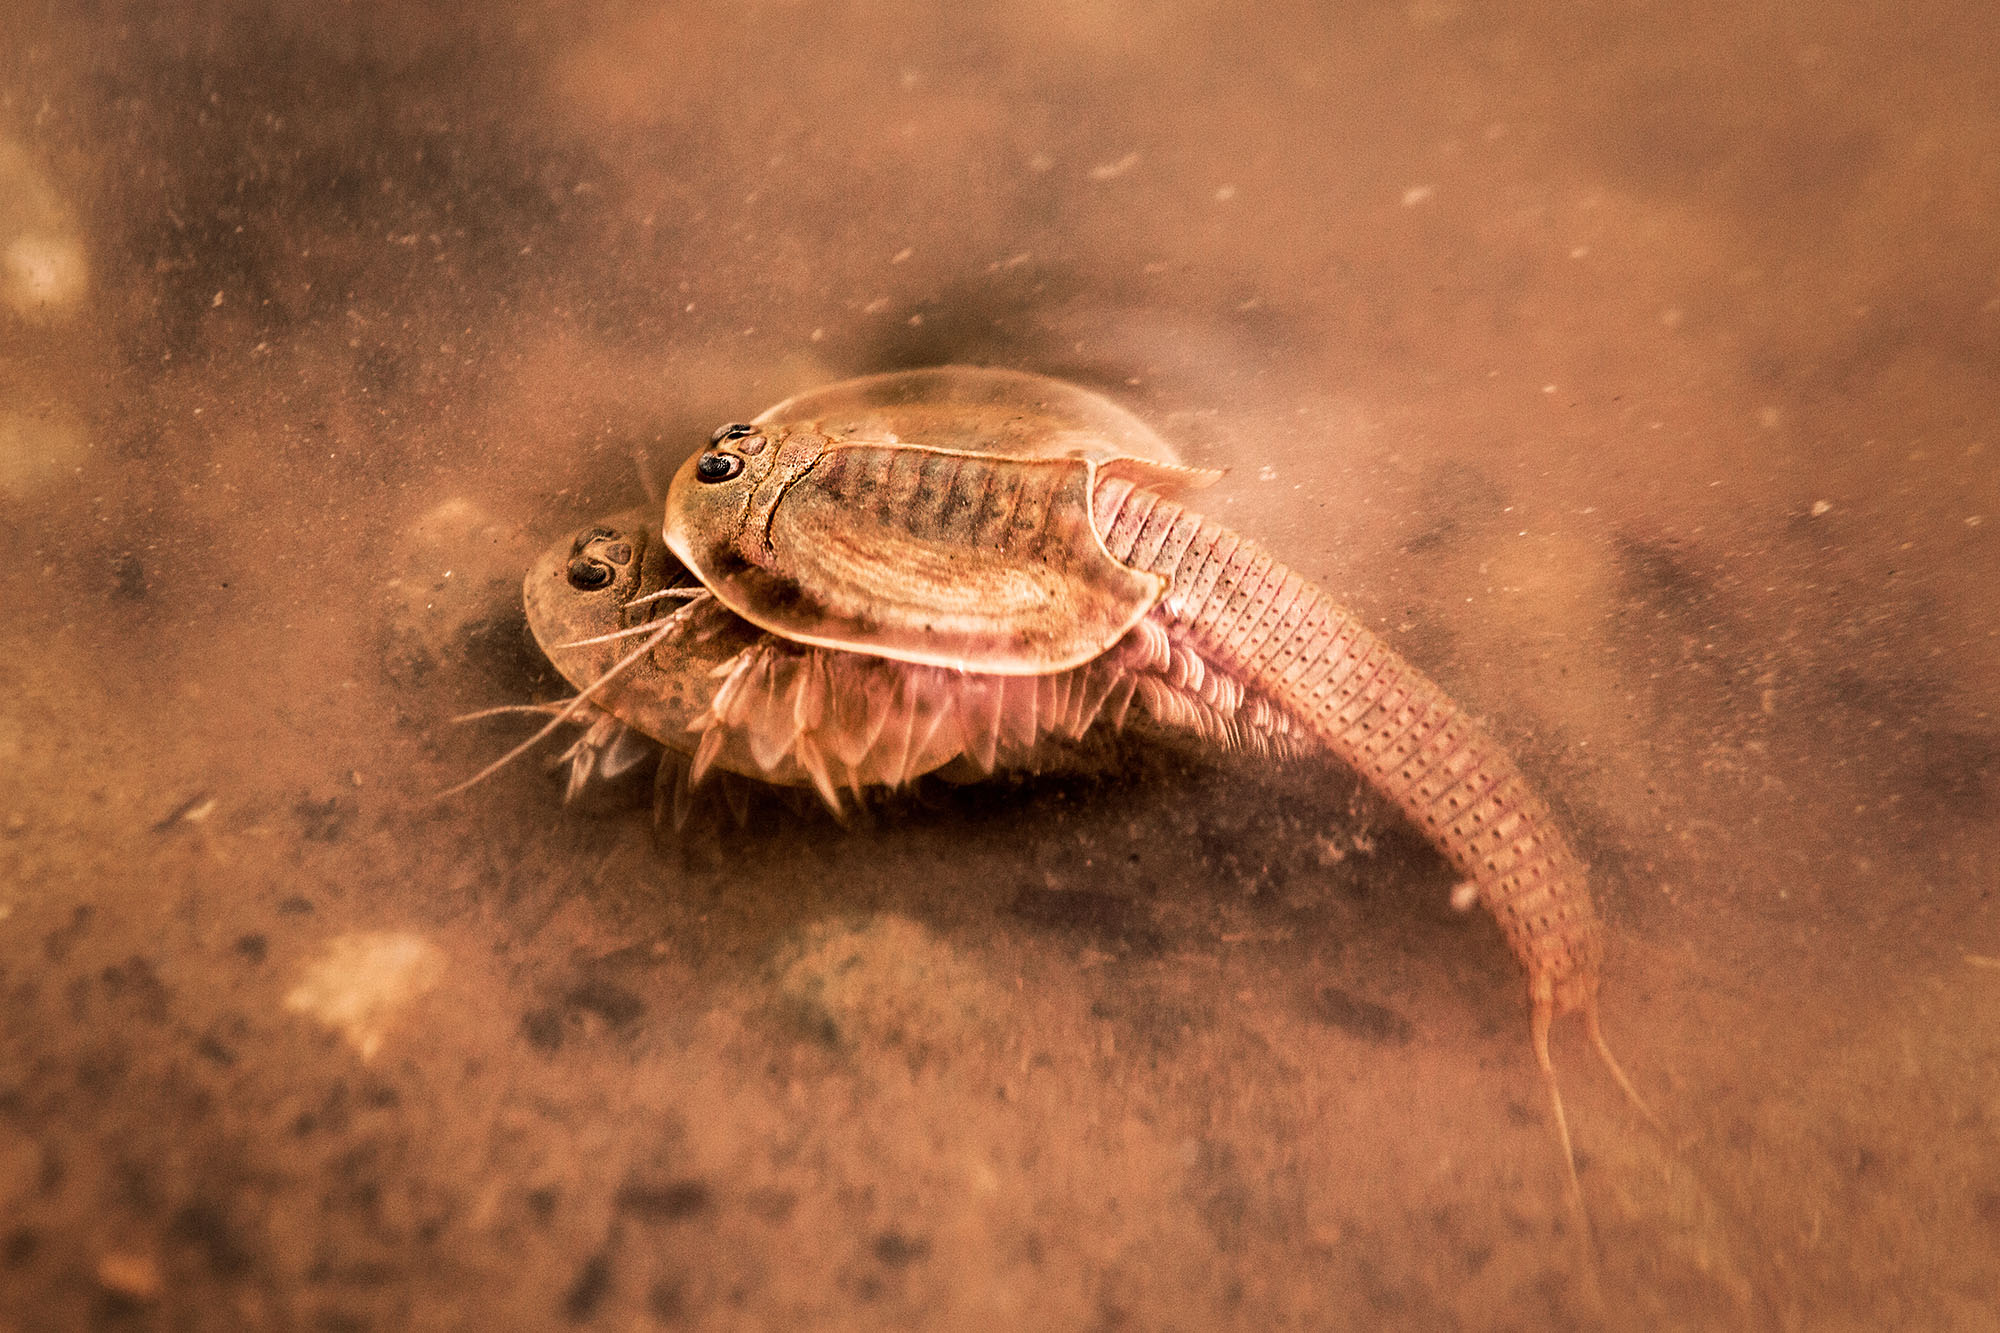 Triops  attempting to mate at the bottom of the murky pool.